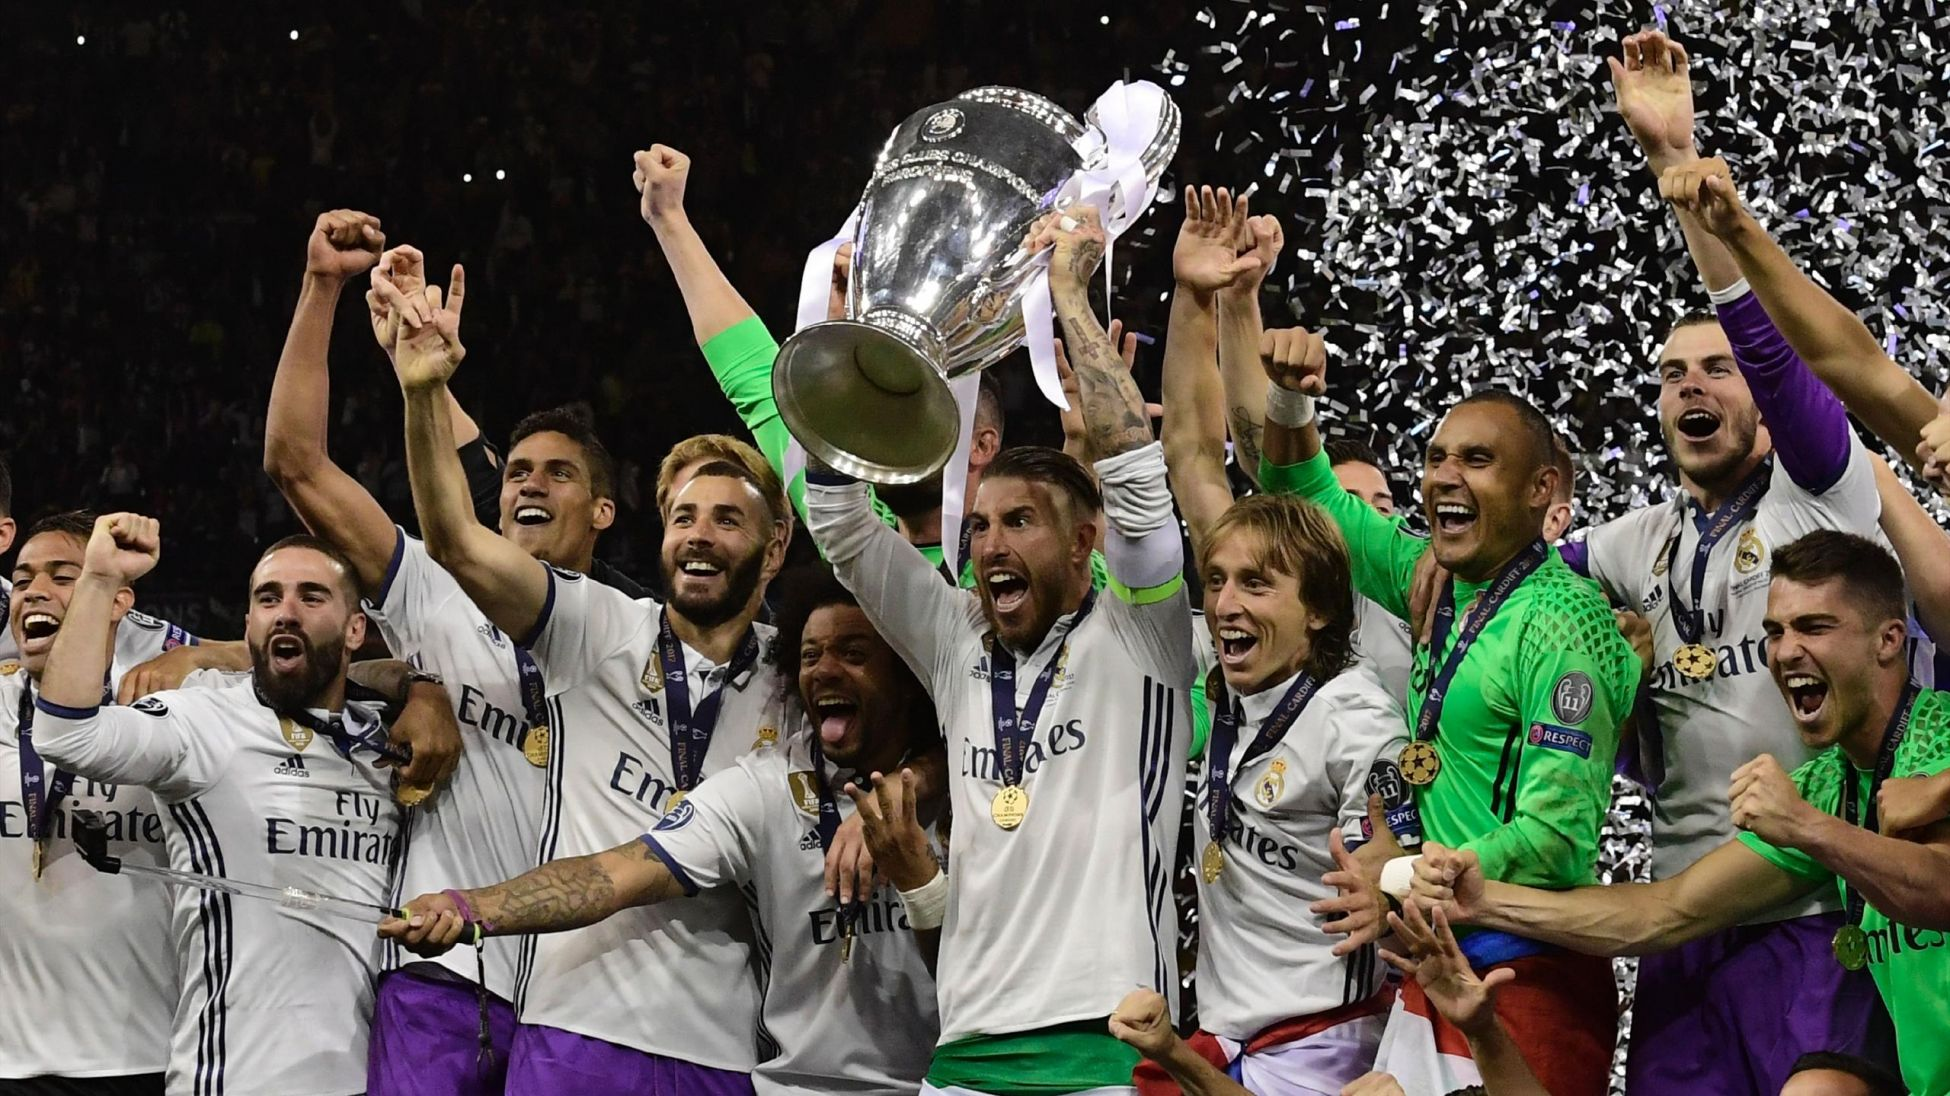 Ligue Des Champions Le Real Madrid Conserve Son Titre